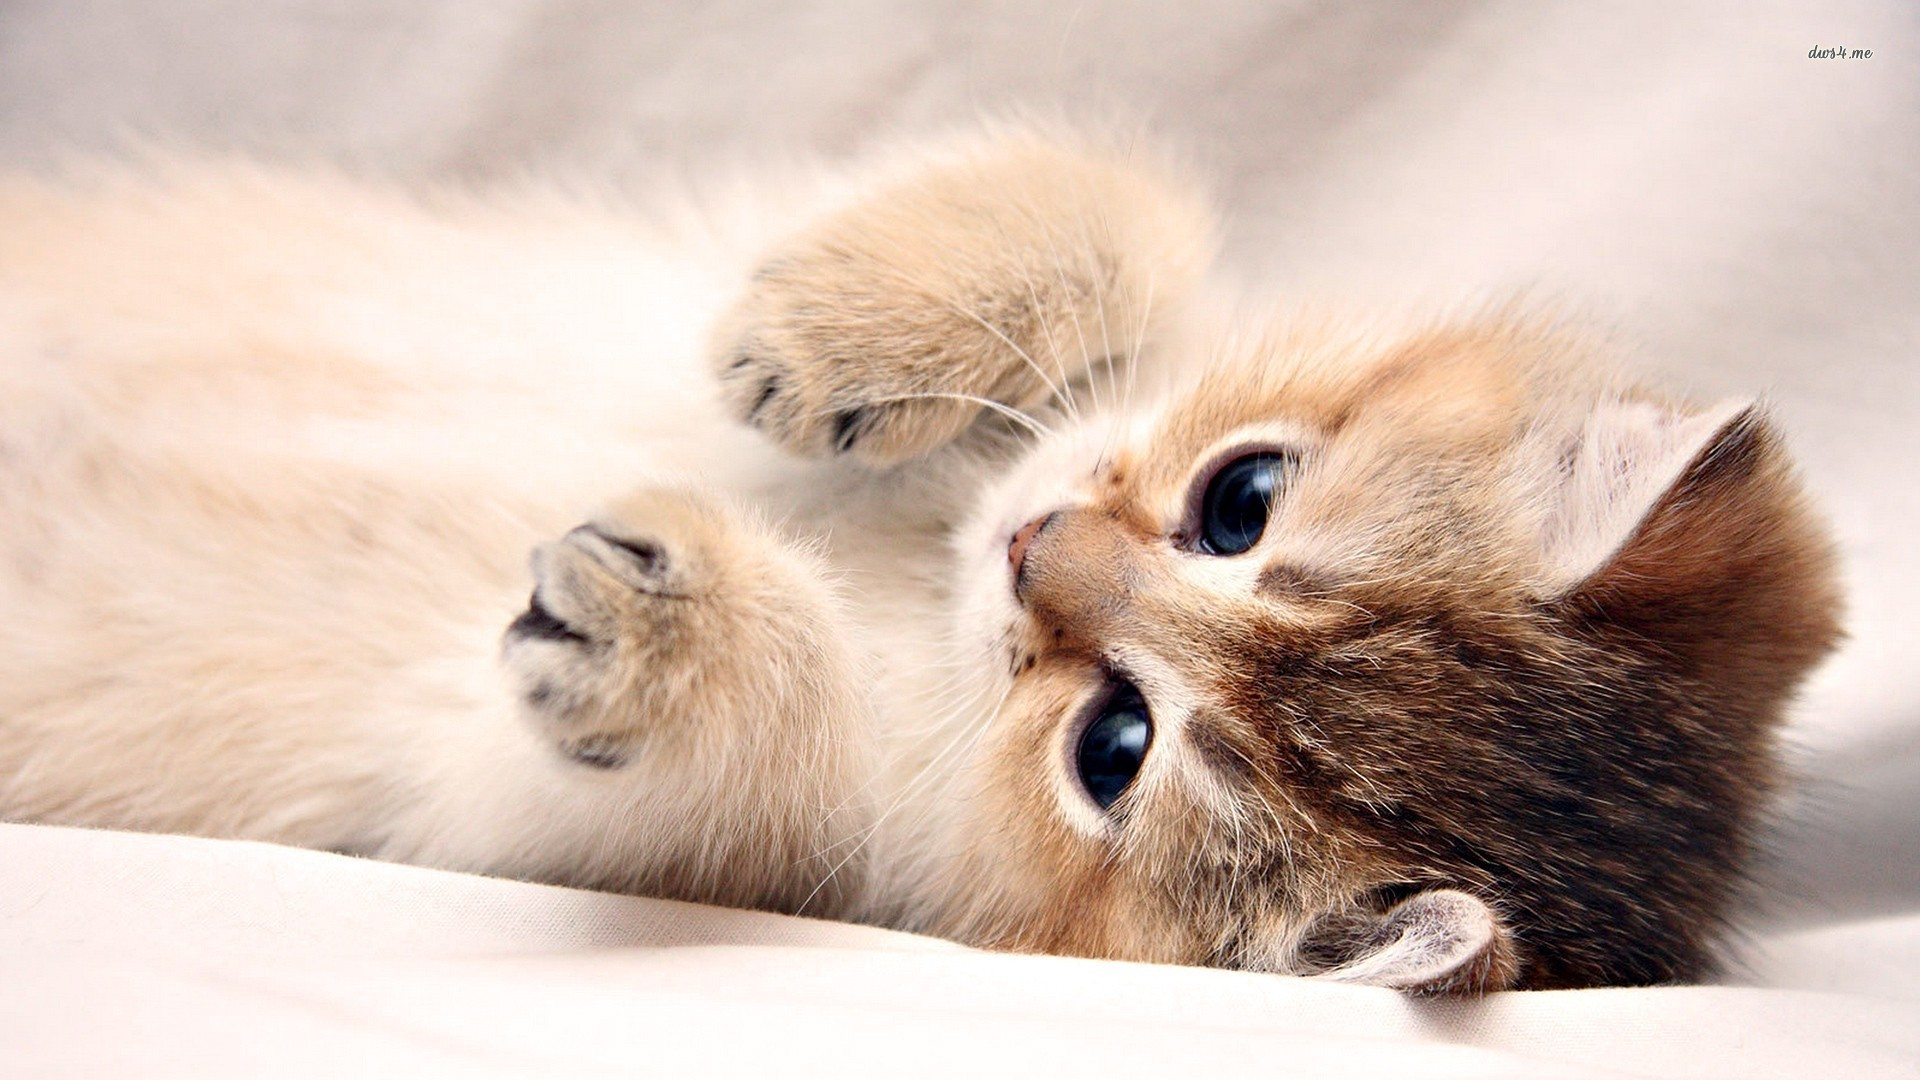 1920x1080 Kitten wallpaper 1280x800 Kitten wallpaper 1366x768 Kitten wallpaper .